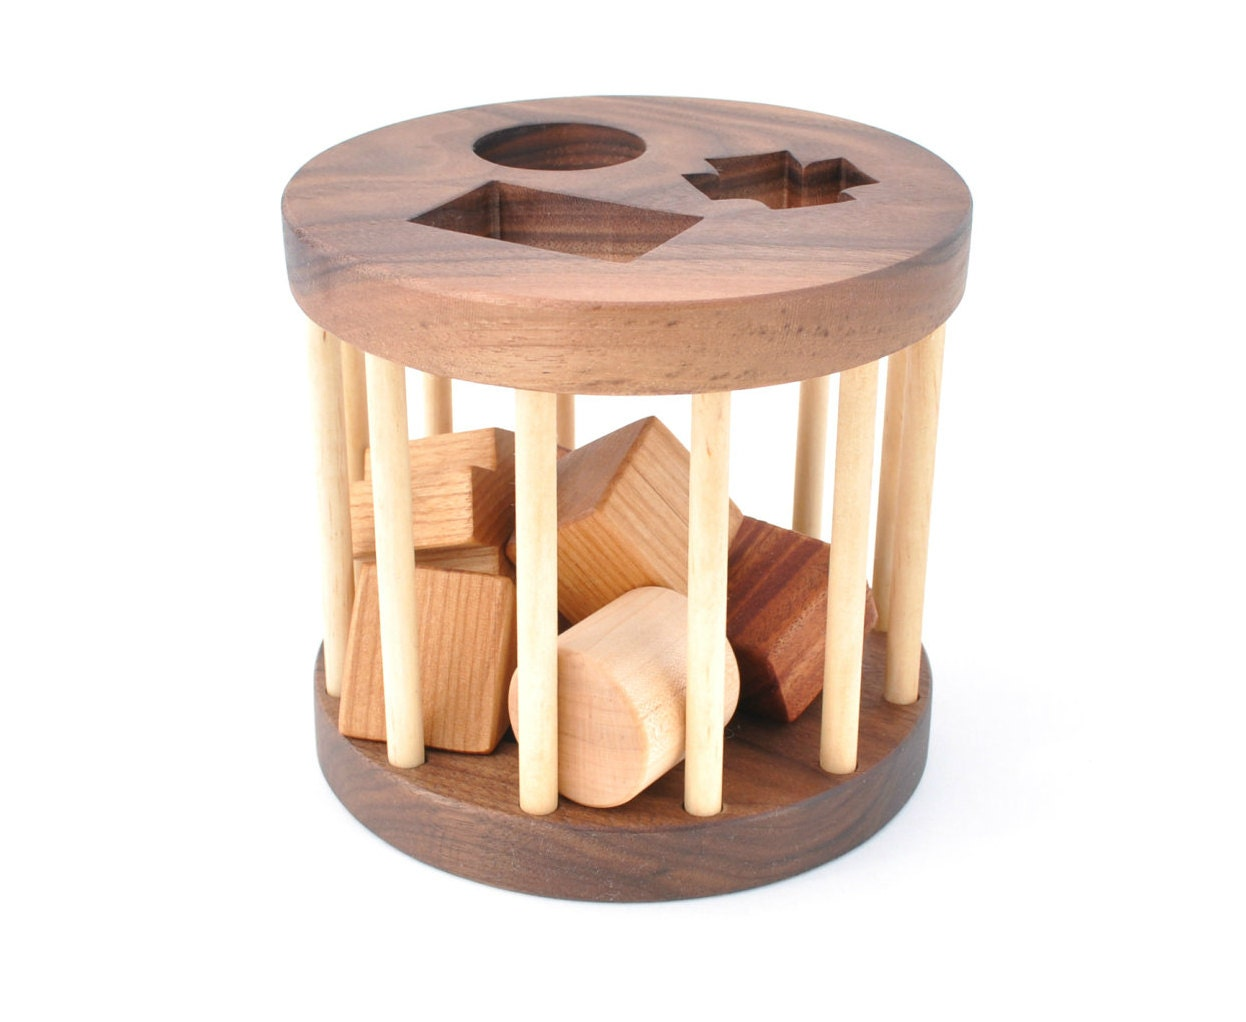 Wooden Educational Toys : Wooden shape sorter toy montessori inspired educational